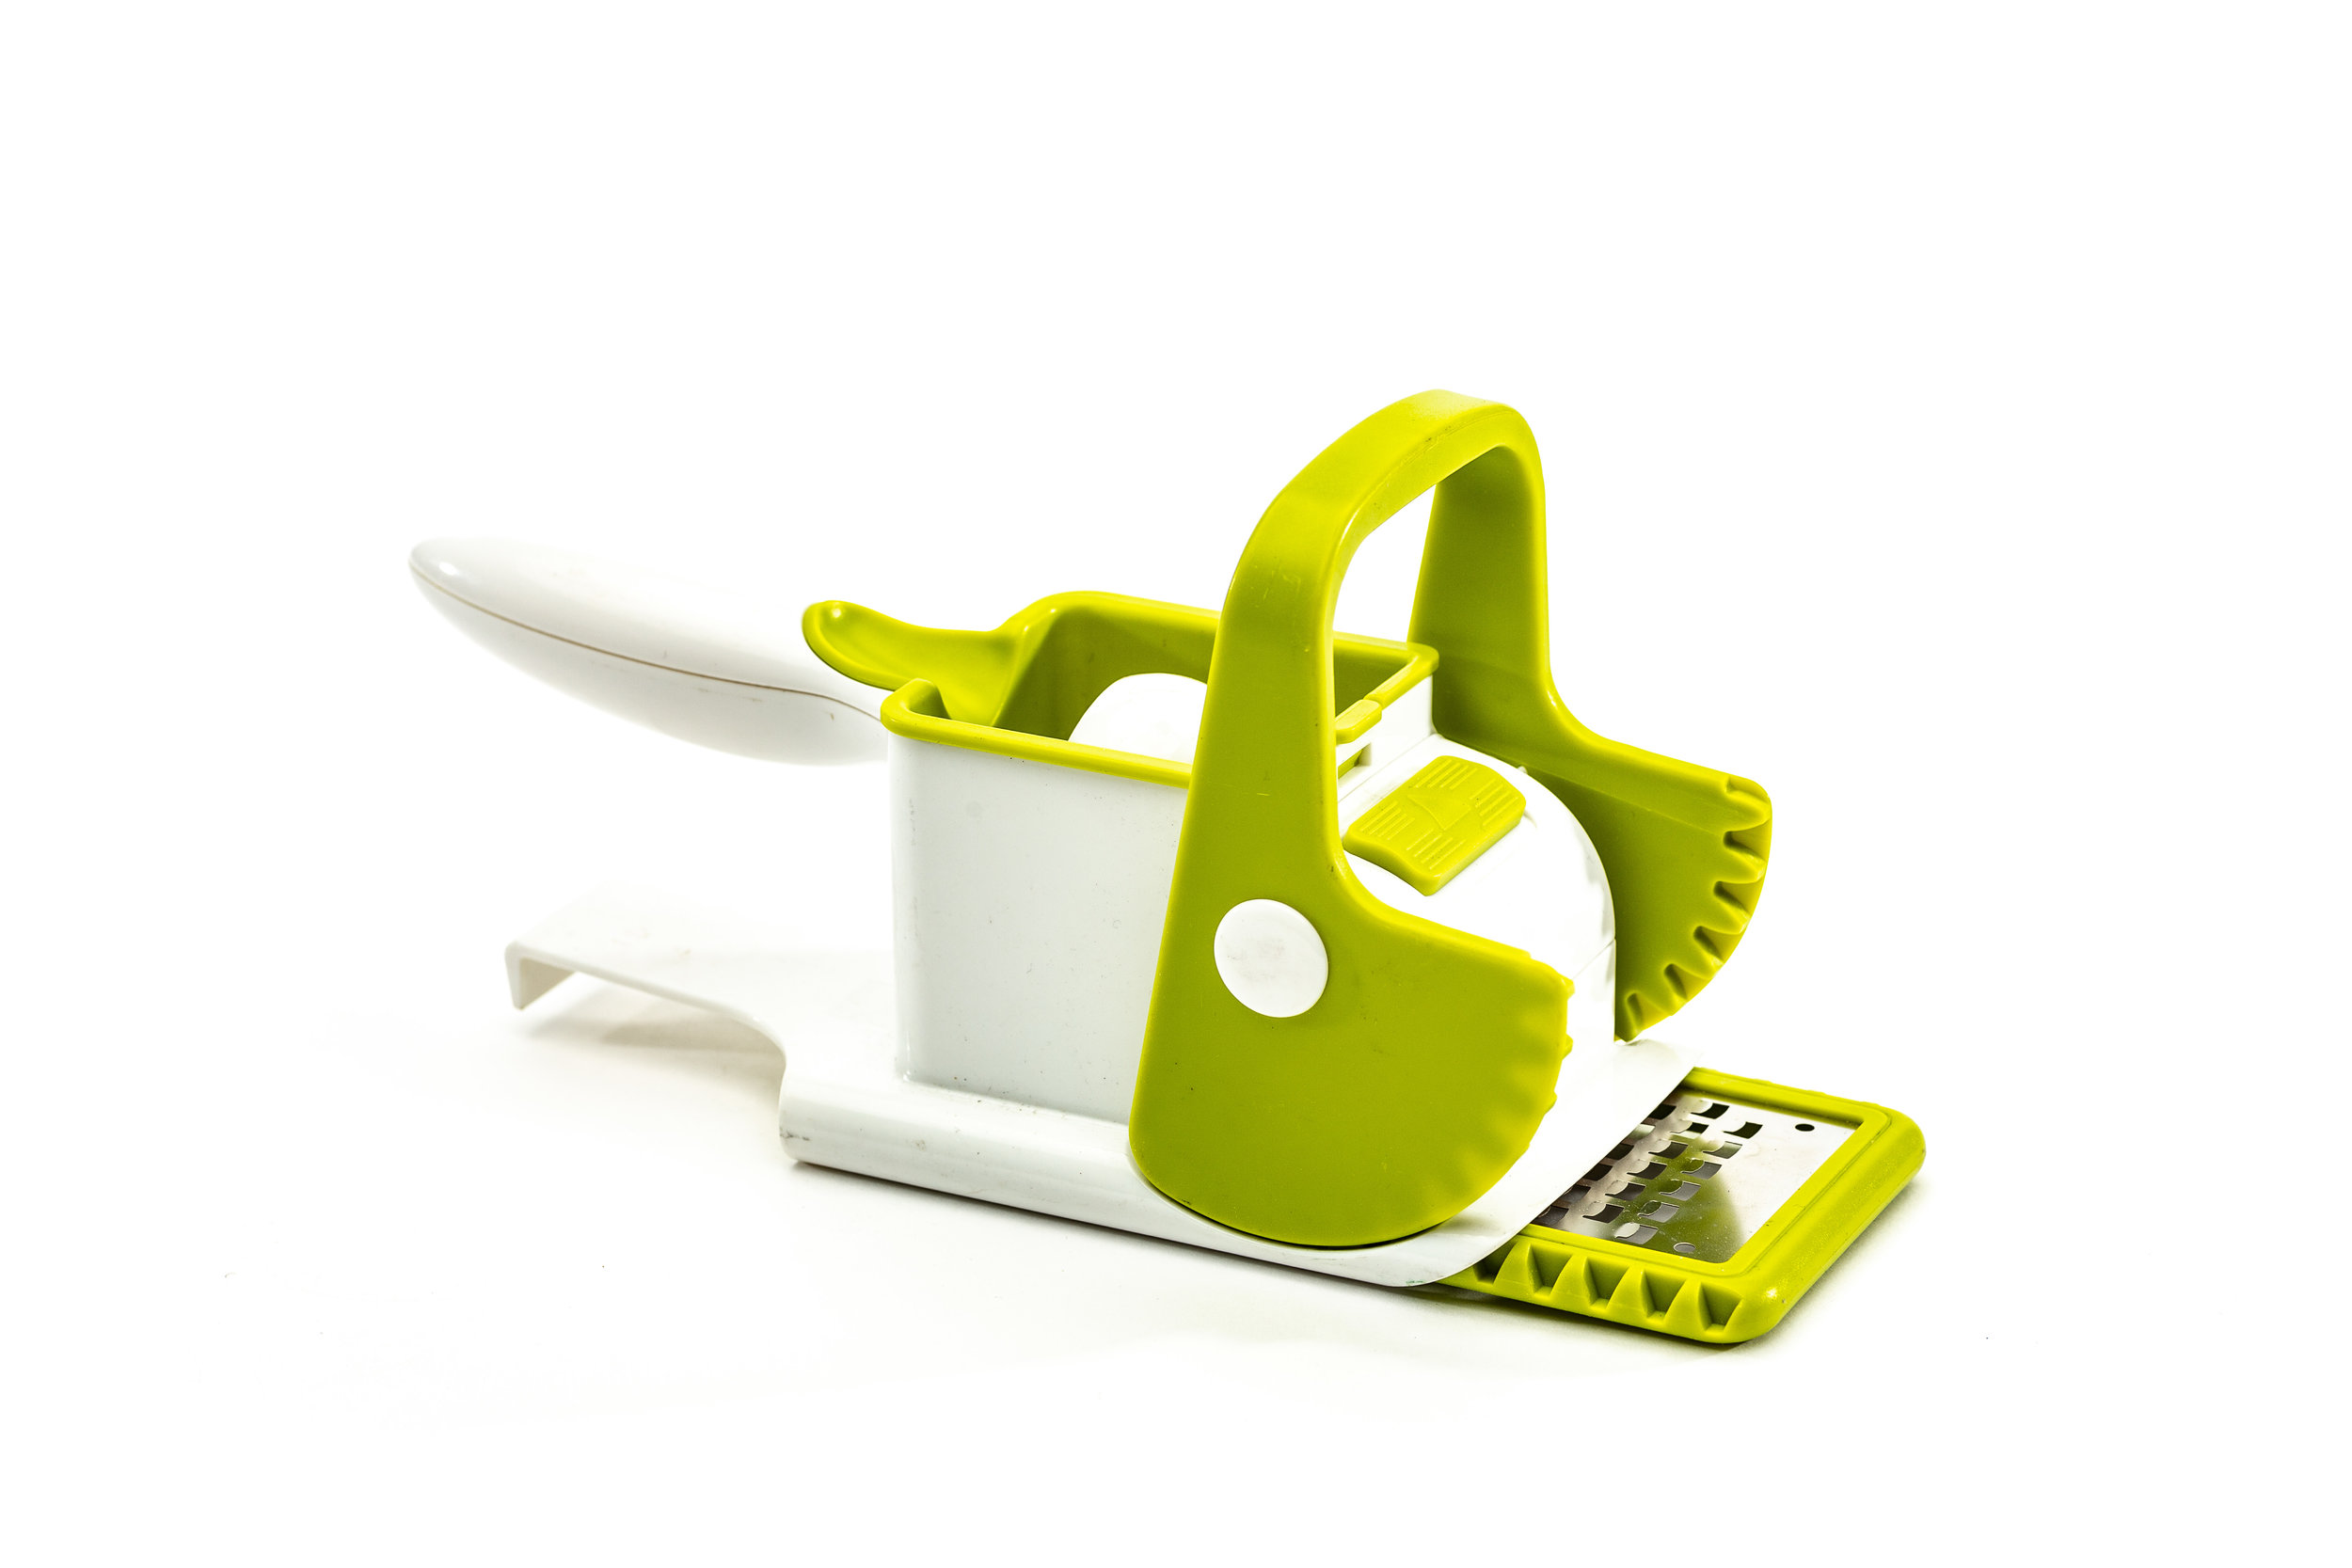 A Trident_KitchenProducts_0042.jpg